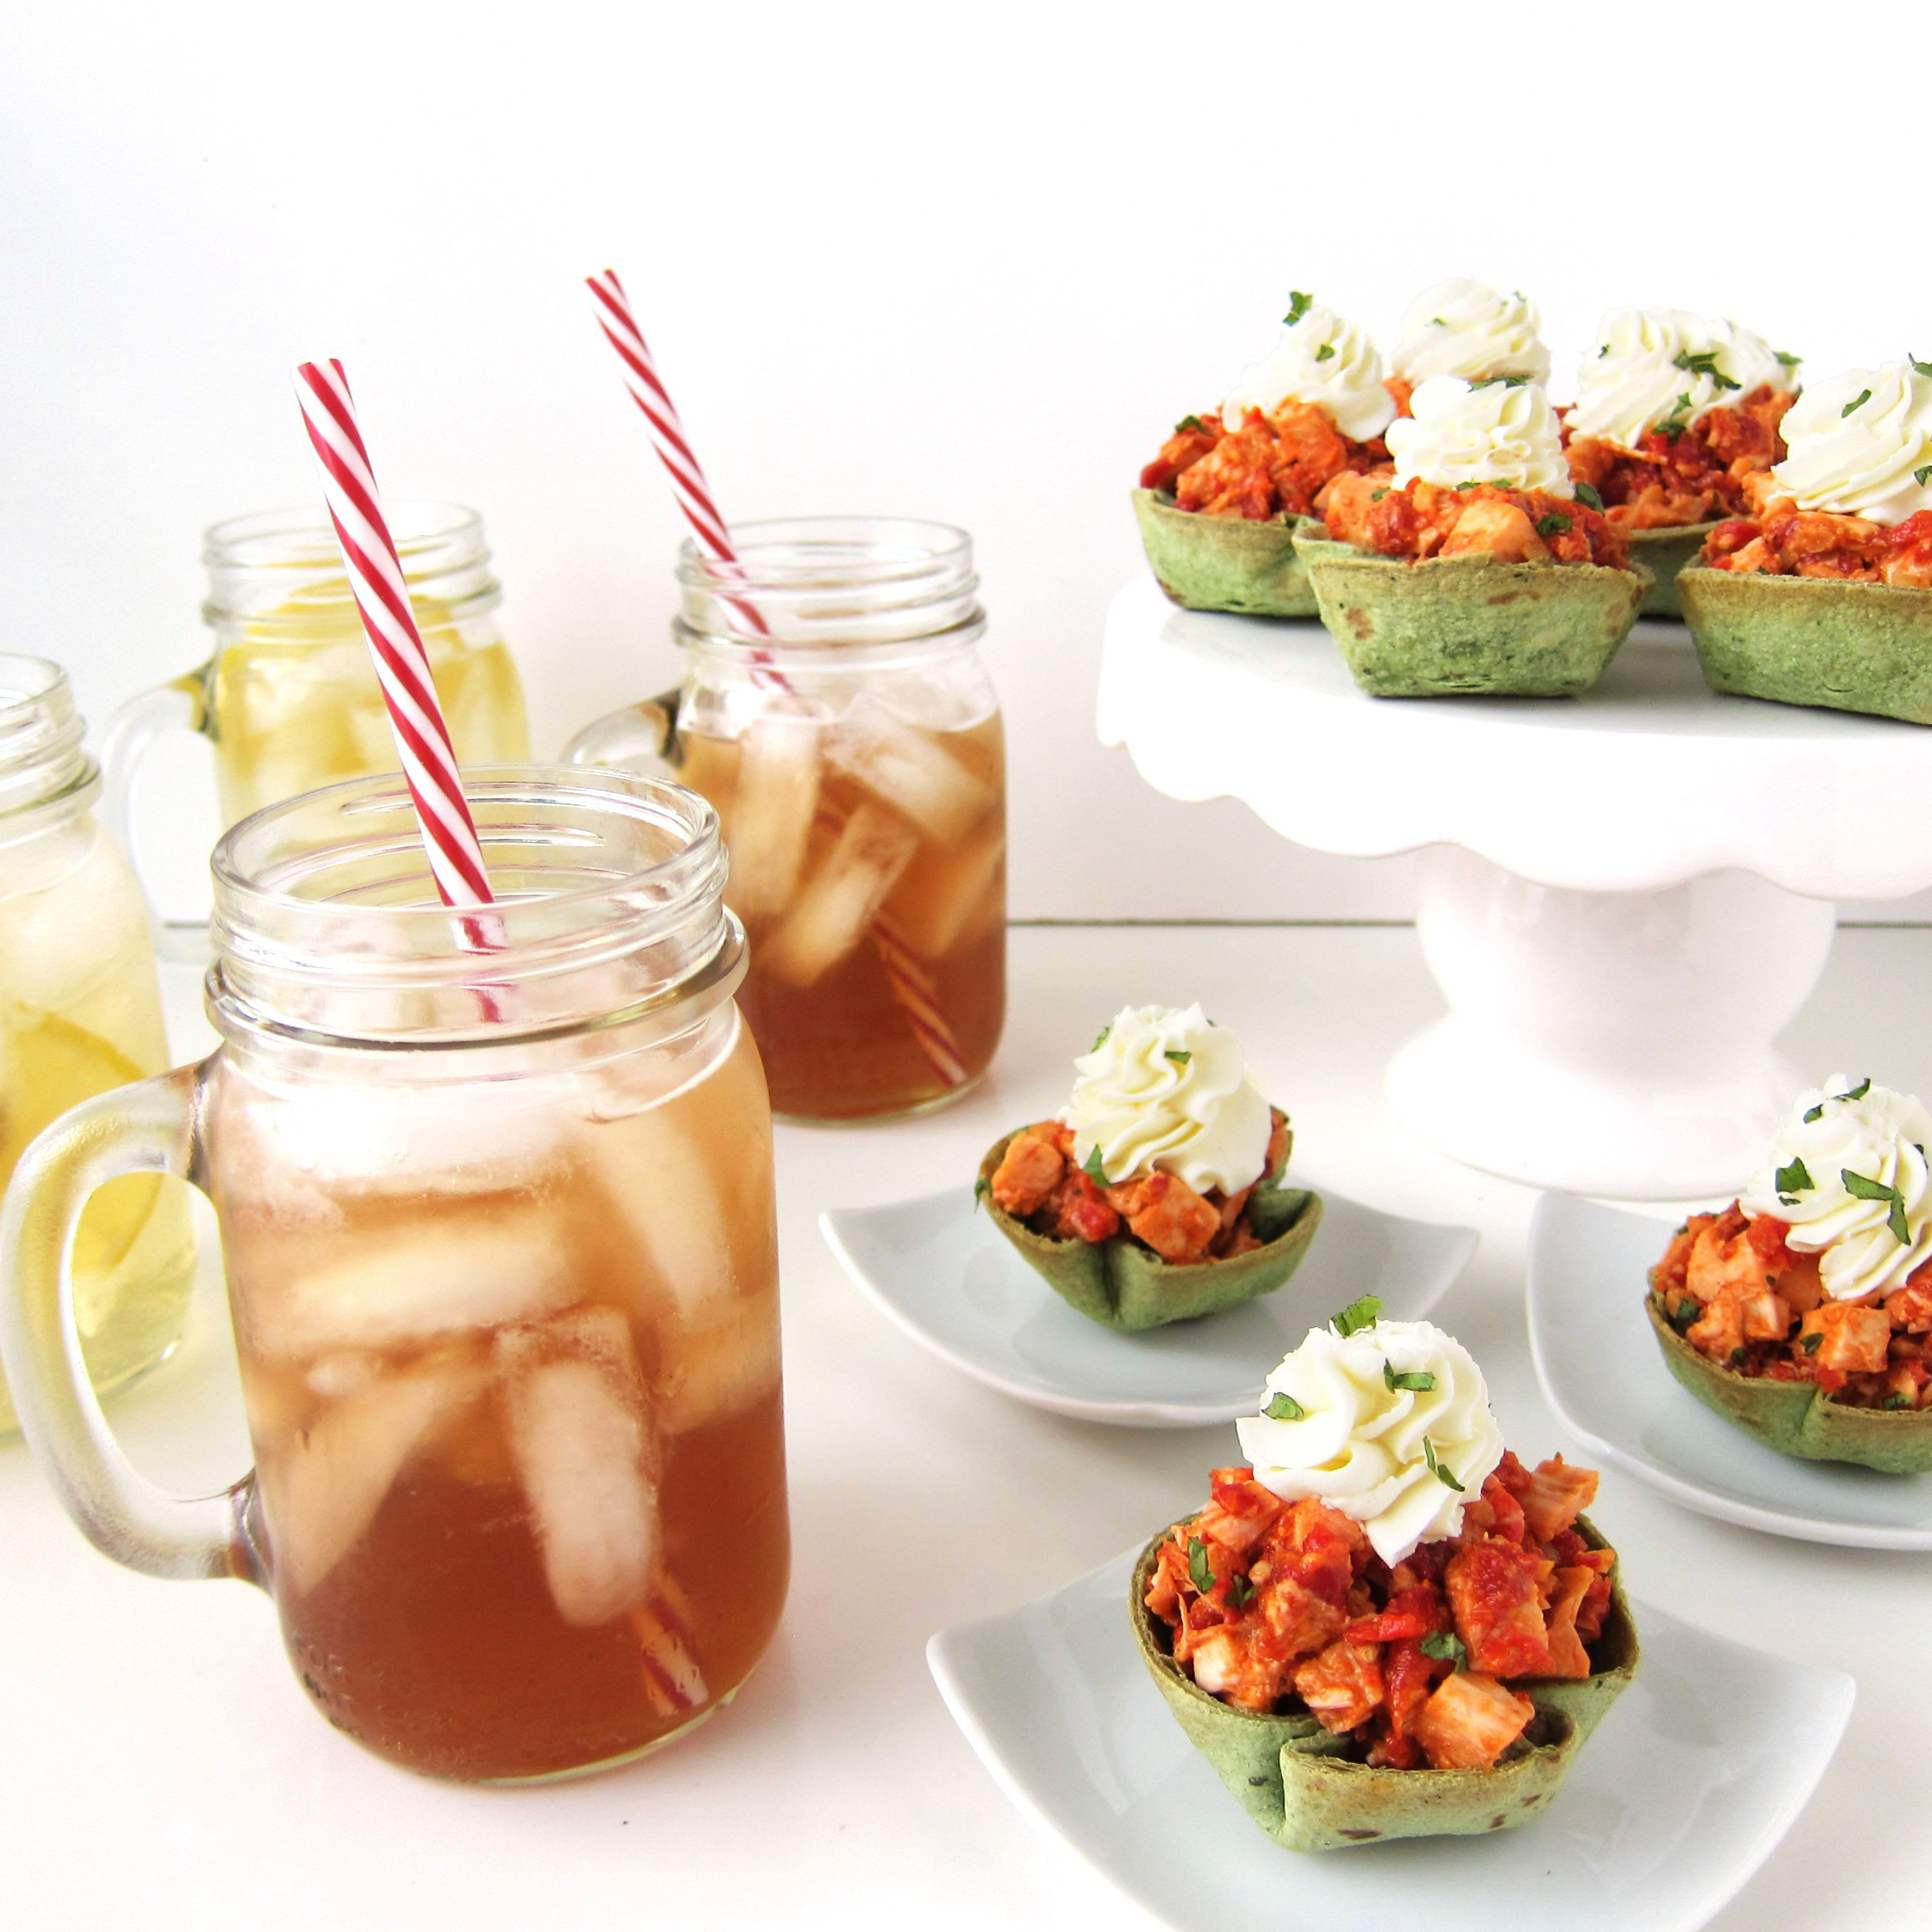 Festive little baked spinach tortilla cups filled with a brightly flavored Roasted Red Pepper Pesto Chicken Salad pair perfectly with Lipton Iced Tea and will make a lovely meal to bring your family together during the busy holiday season.